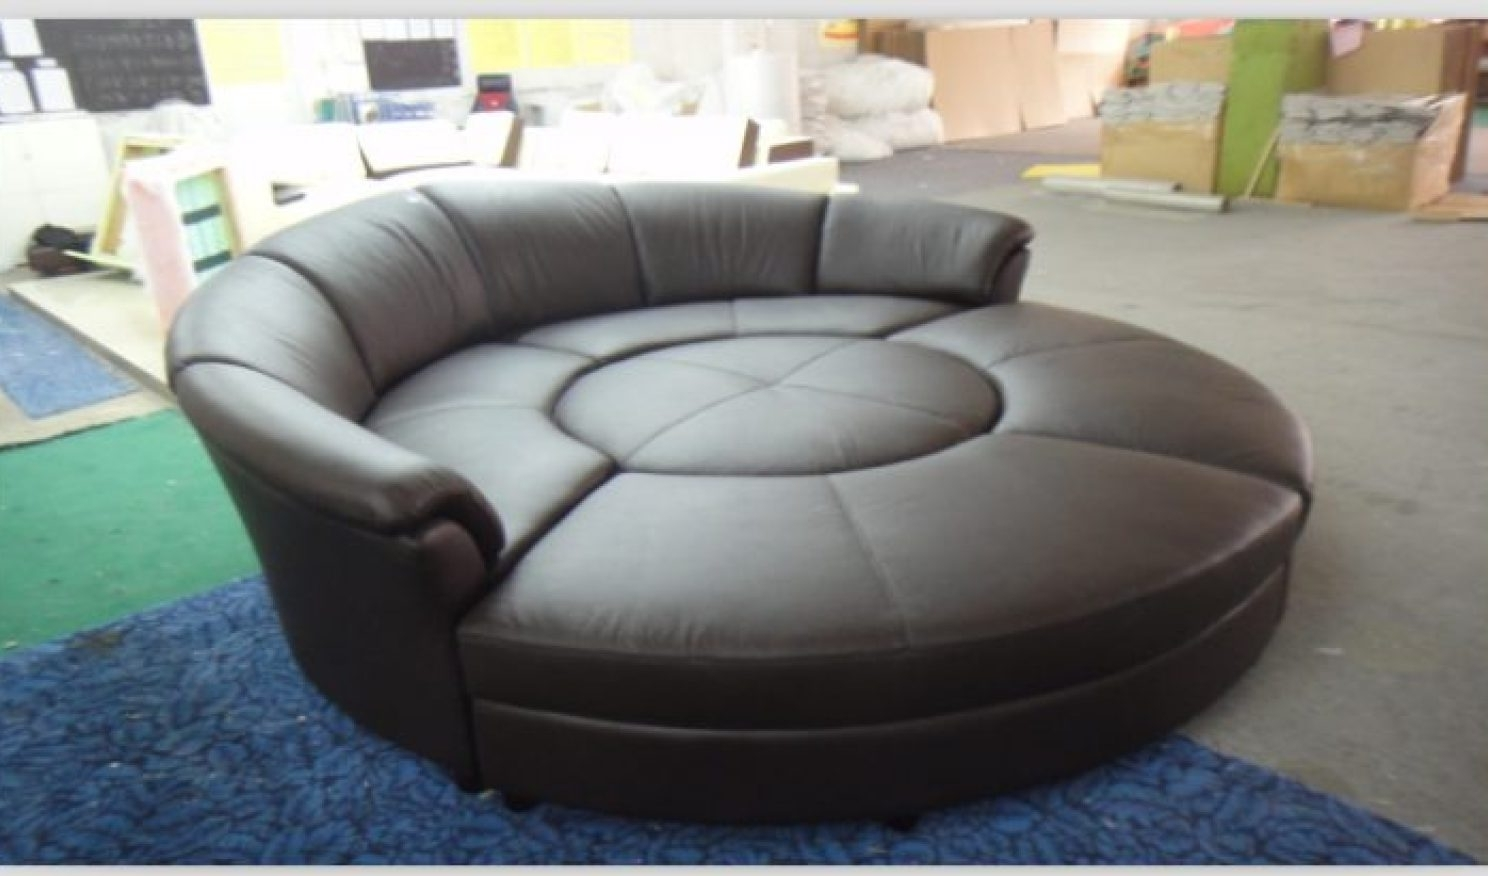 Widely Used Big Sofa Chairs Inside Sofa : Sofa Cute Big Chairs Stunning Circular Chair Explore Round (View 15 of 15)